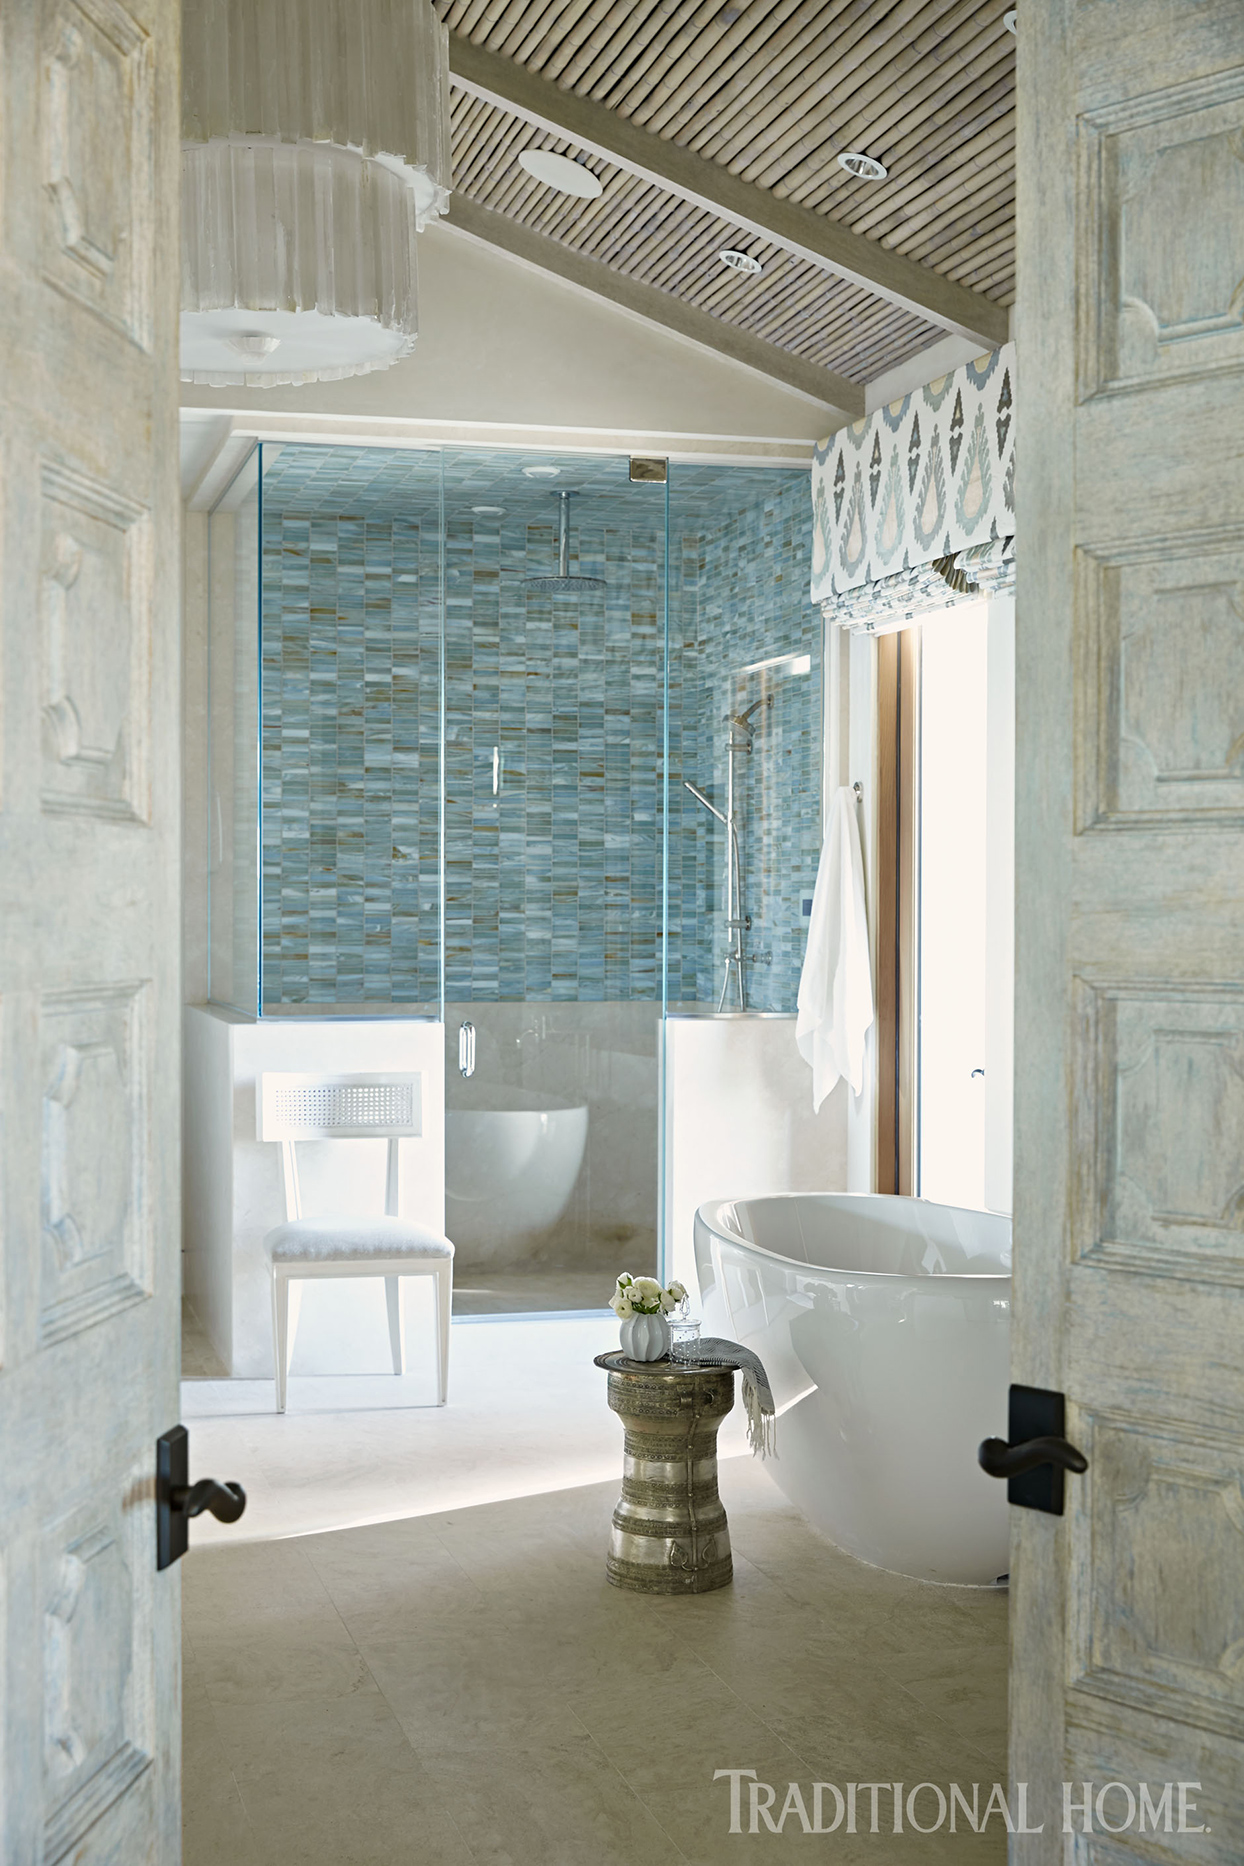 Bathroom with blue tile and white bathtub